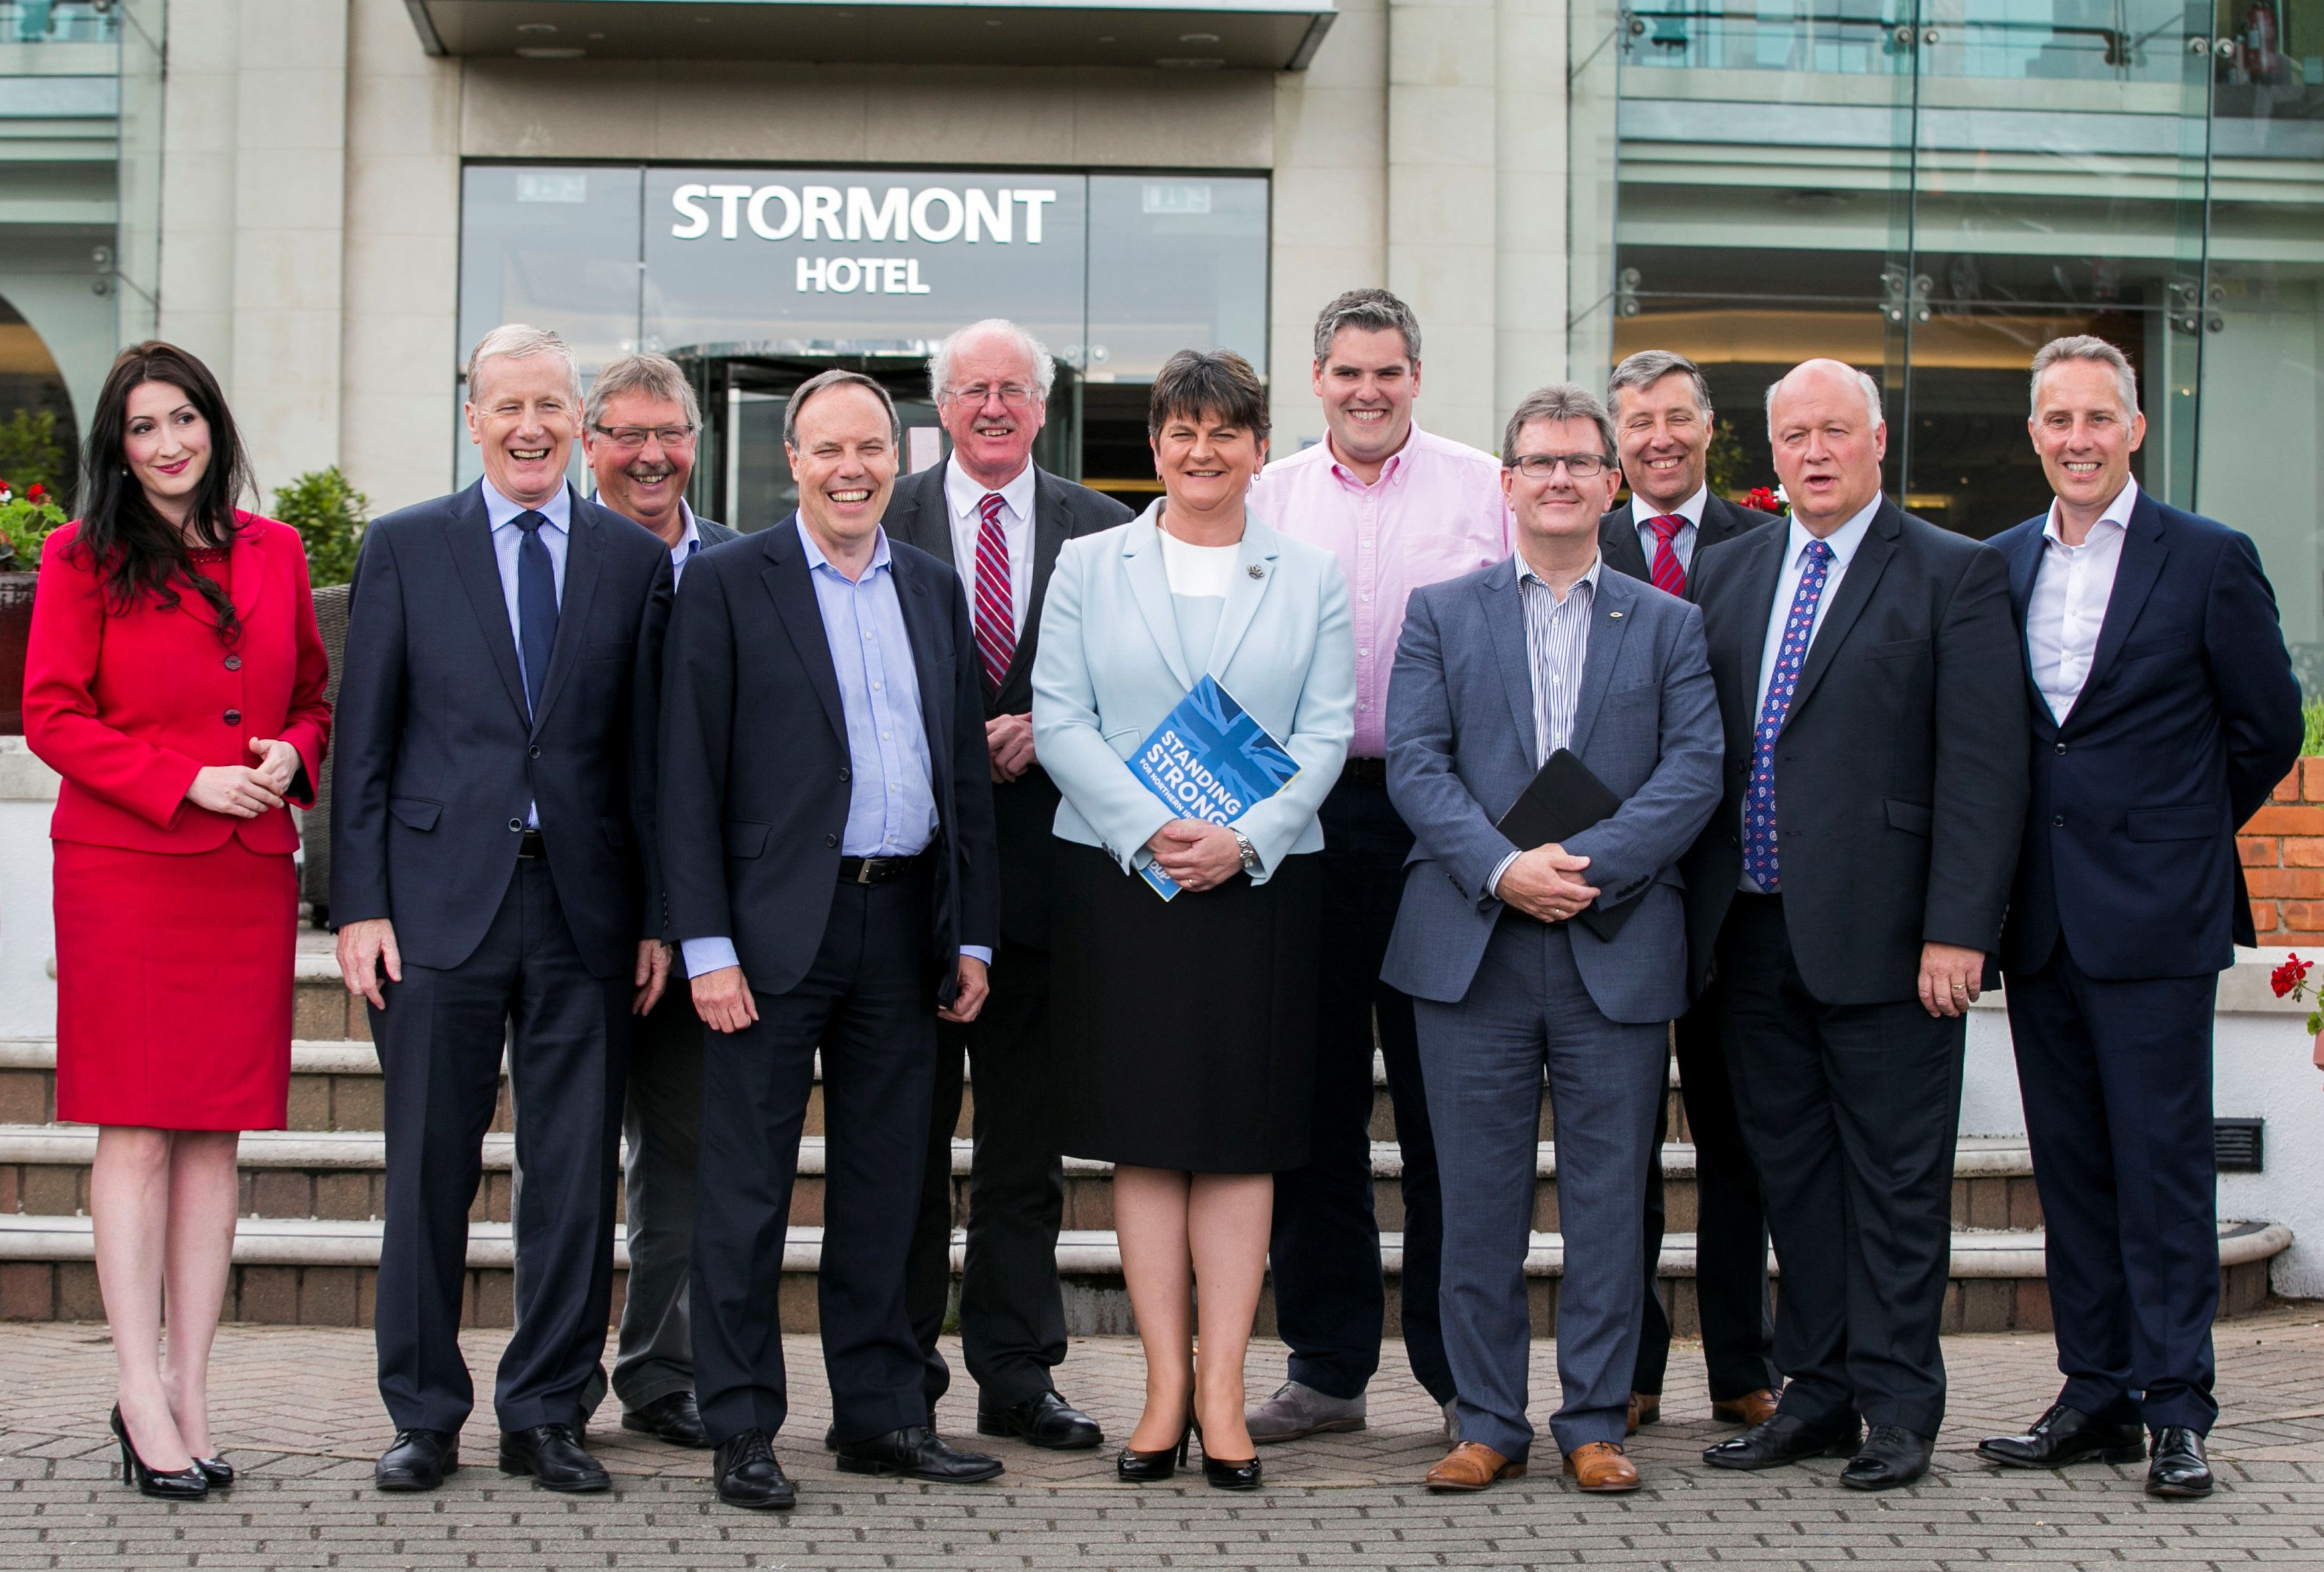 Leader of the Democratic Unionist Party (DUP) Arlene Foster stands with newly elected Members of Parliament (MP's) in Belfast, Northern Ireland, June 9, 2017. REUTERS/Liam McBurney